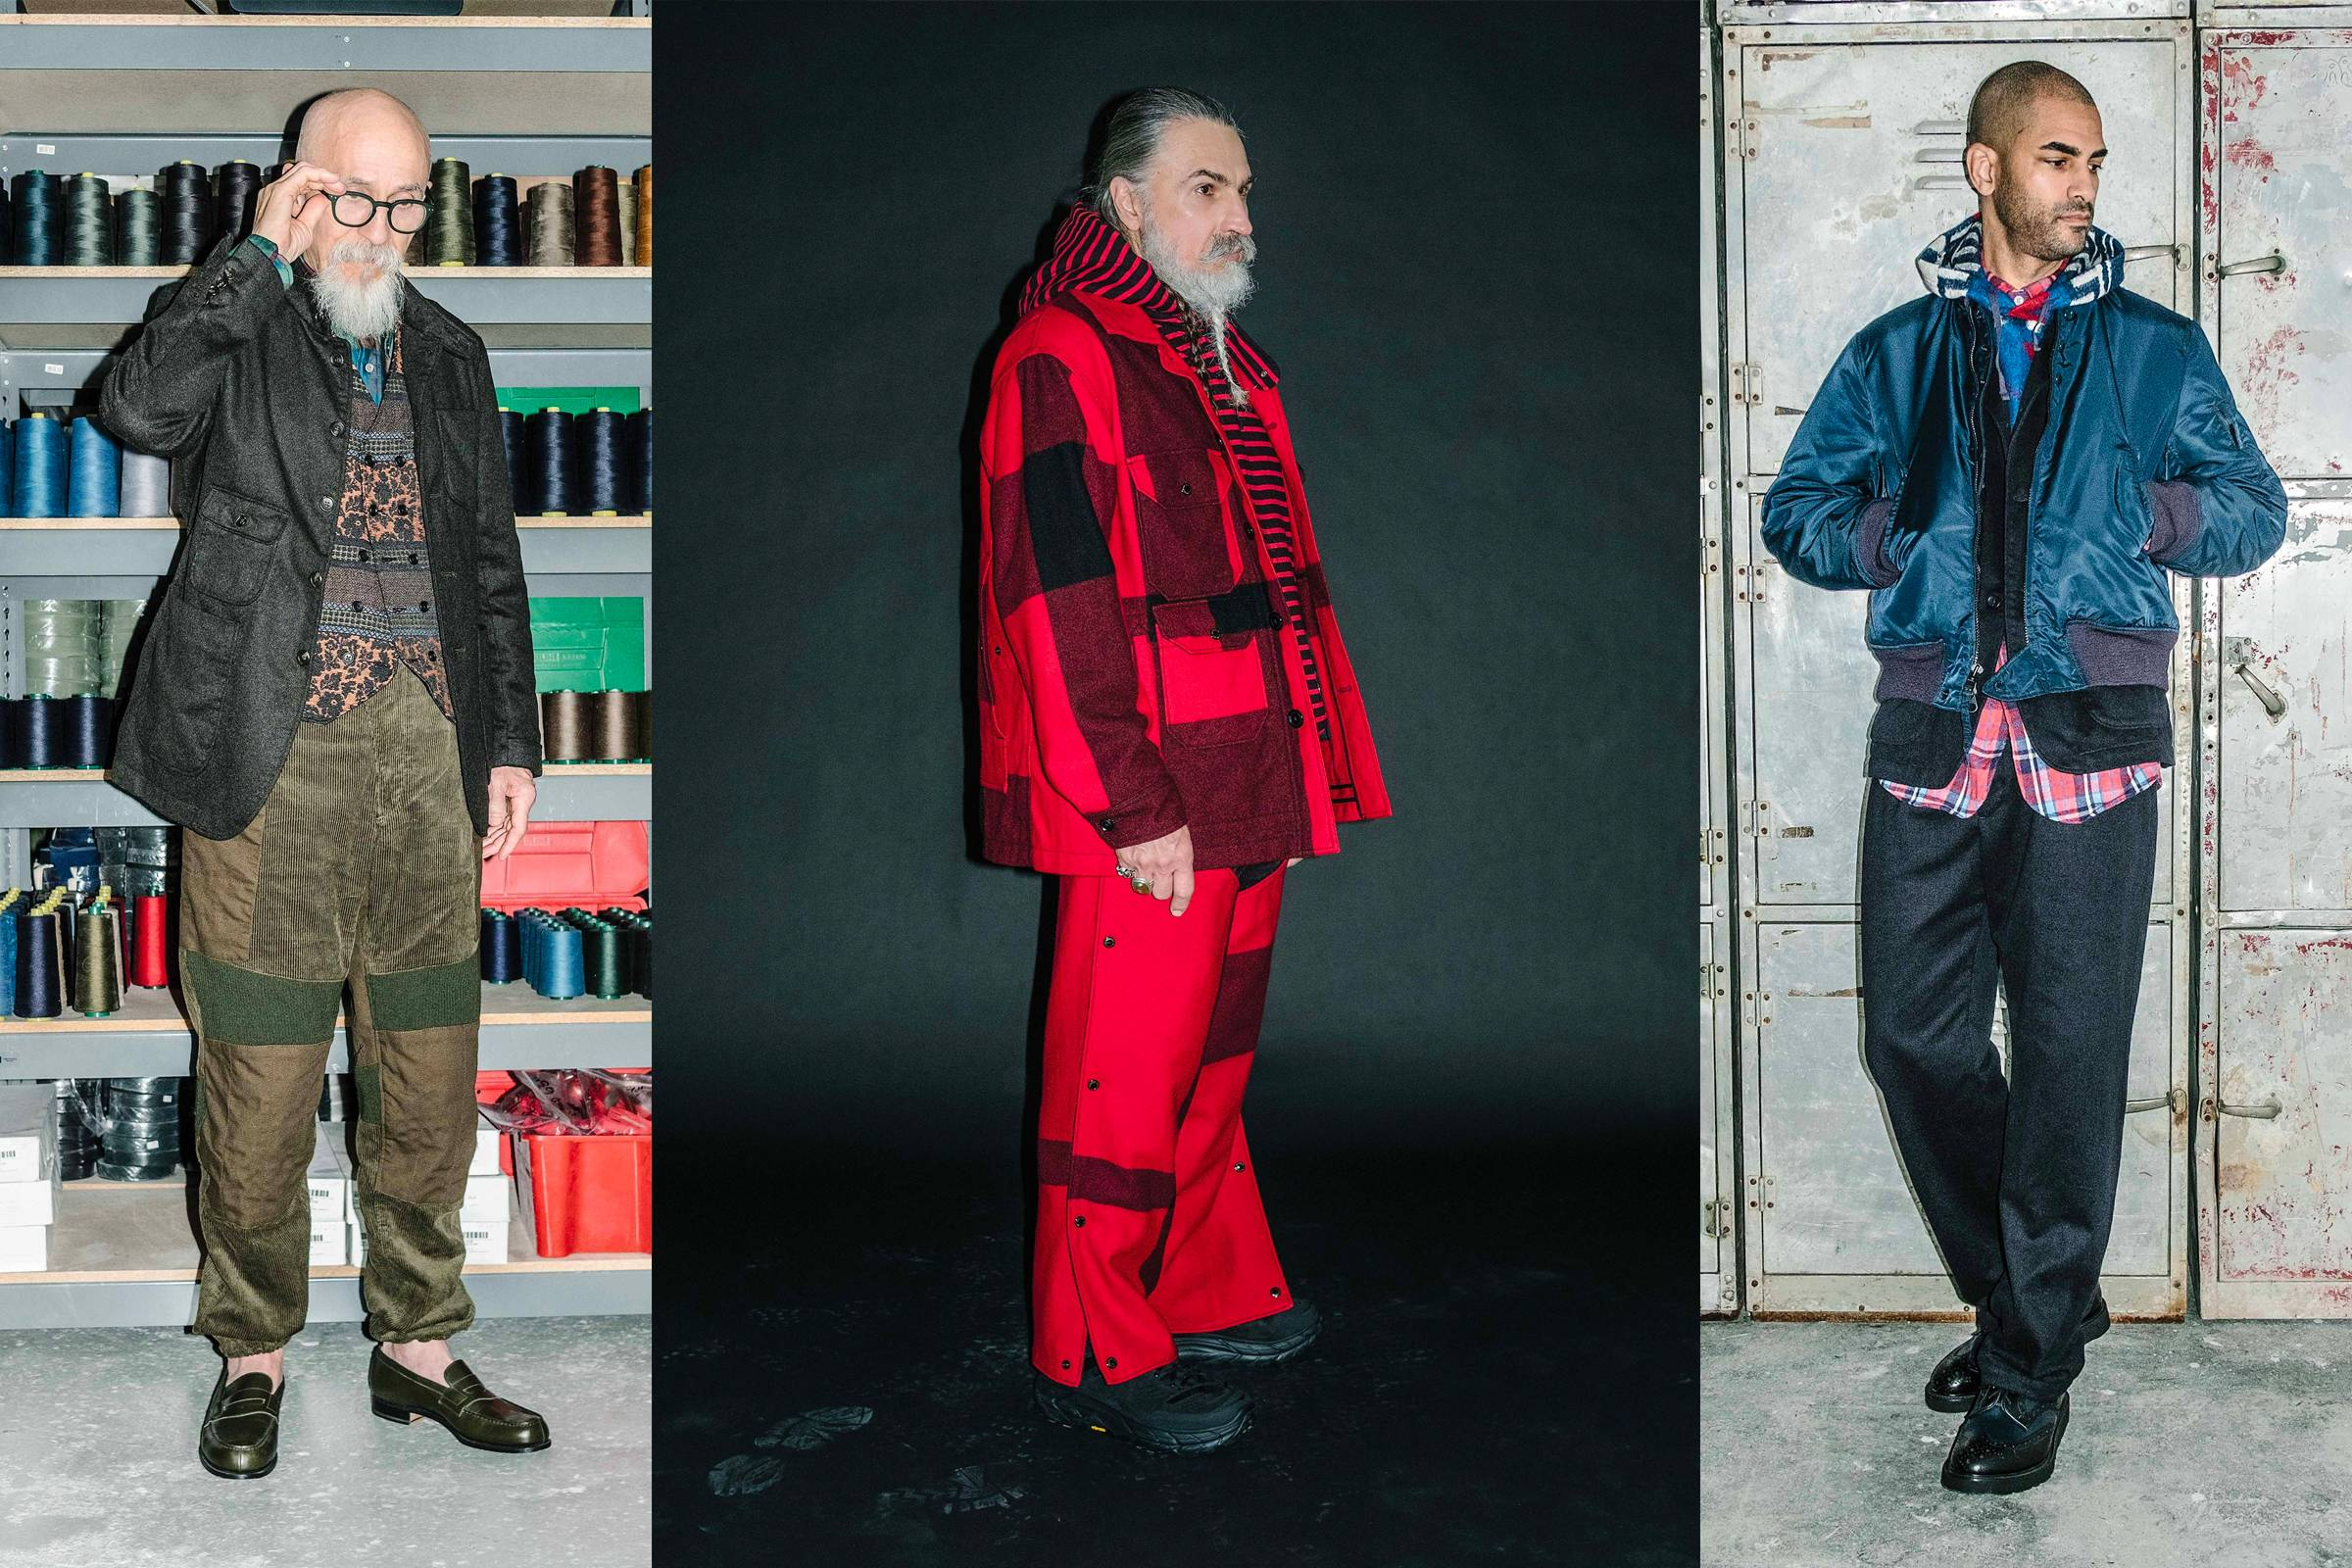 The Eccentricities and Consistencies of Engineered Garments